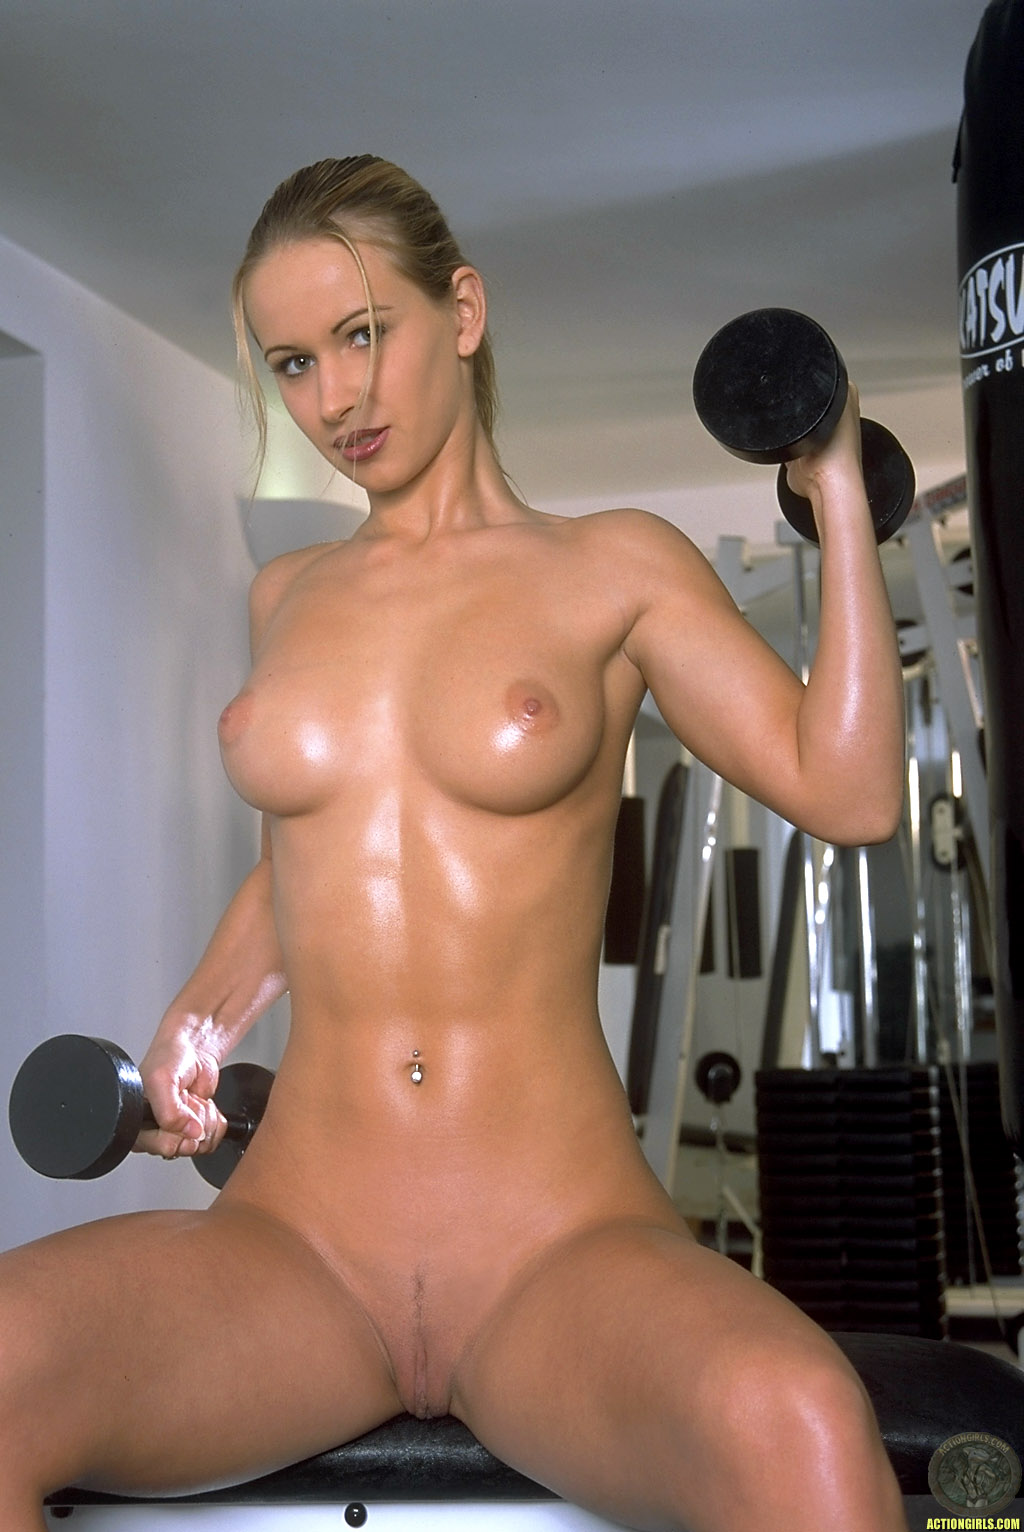 Susana Spears Workout Super Large Only at Actiongirls.com